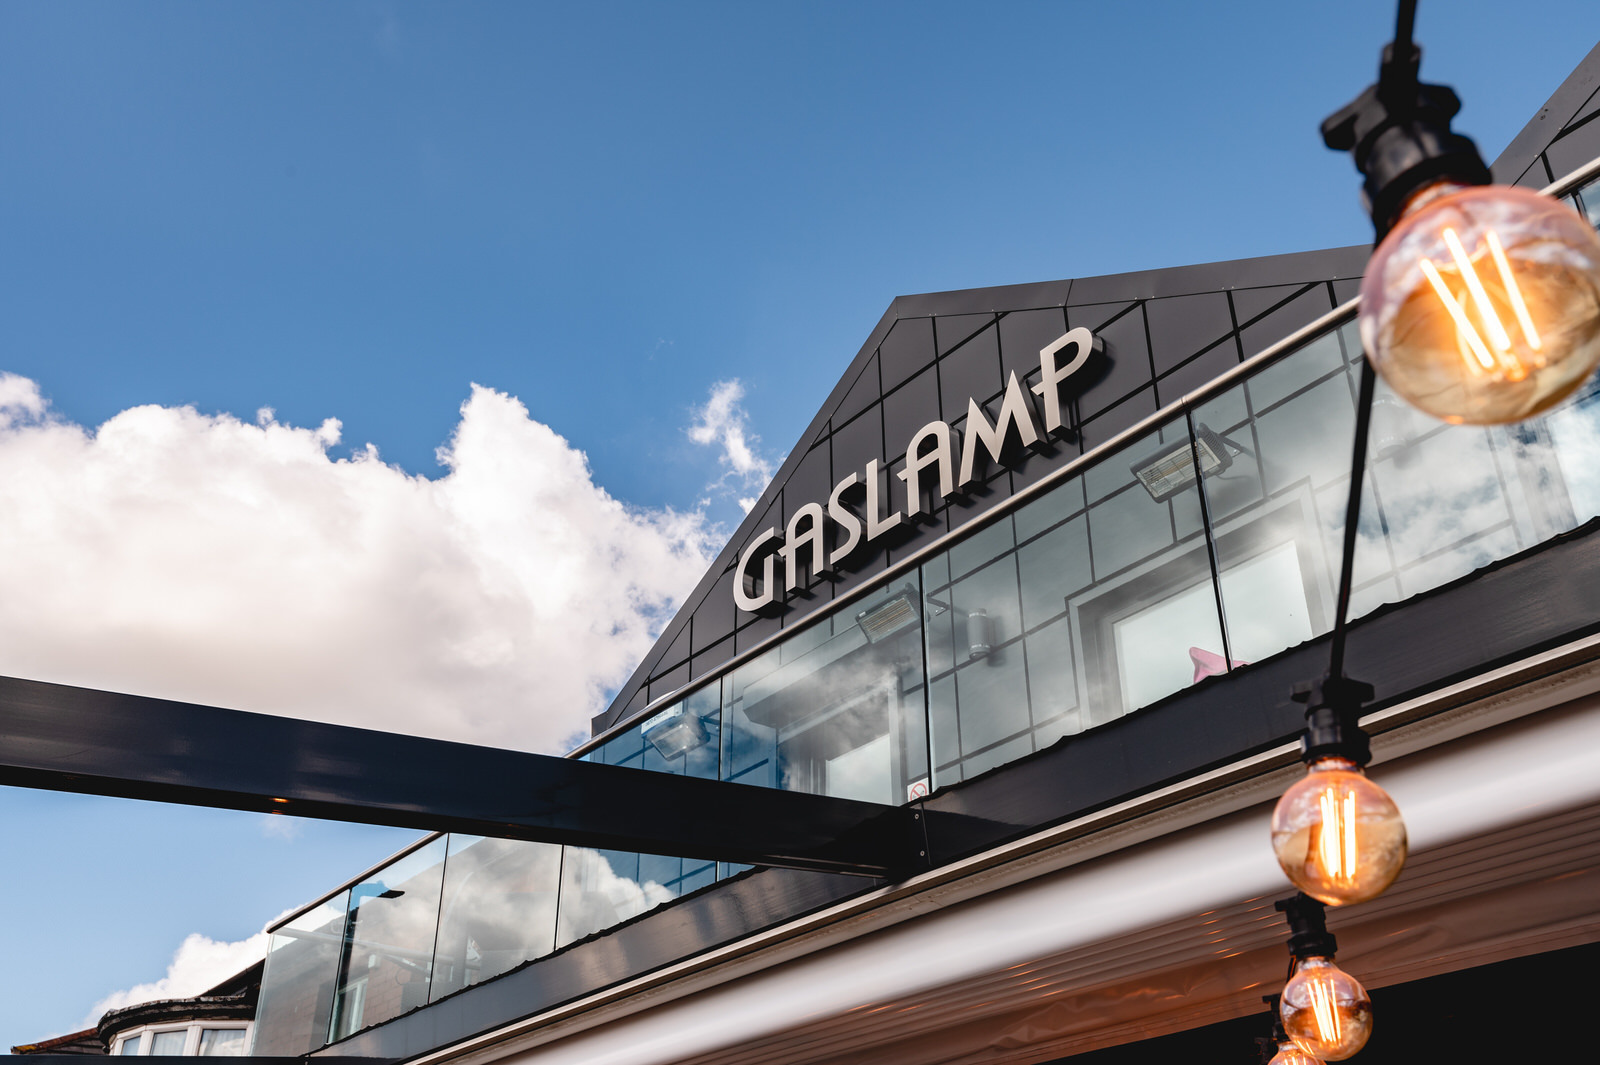 GasLamp Photography by Wipdesigns Photographer Sheffield 18